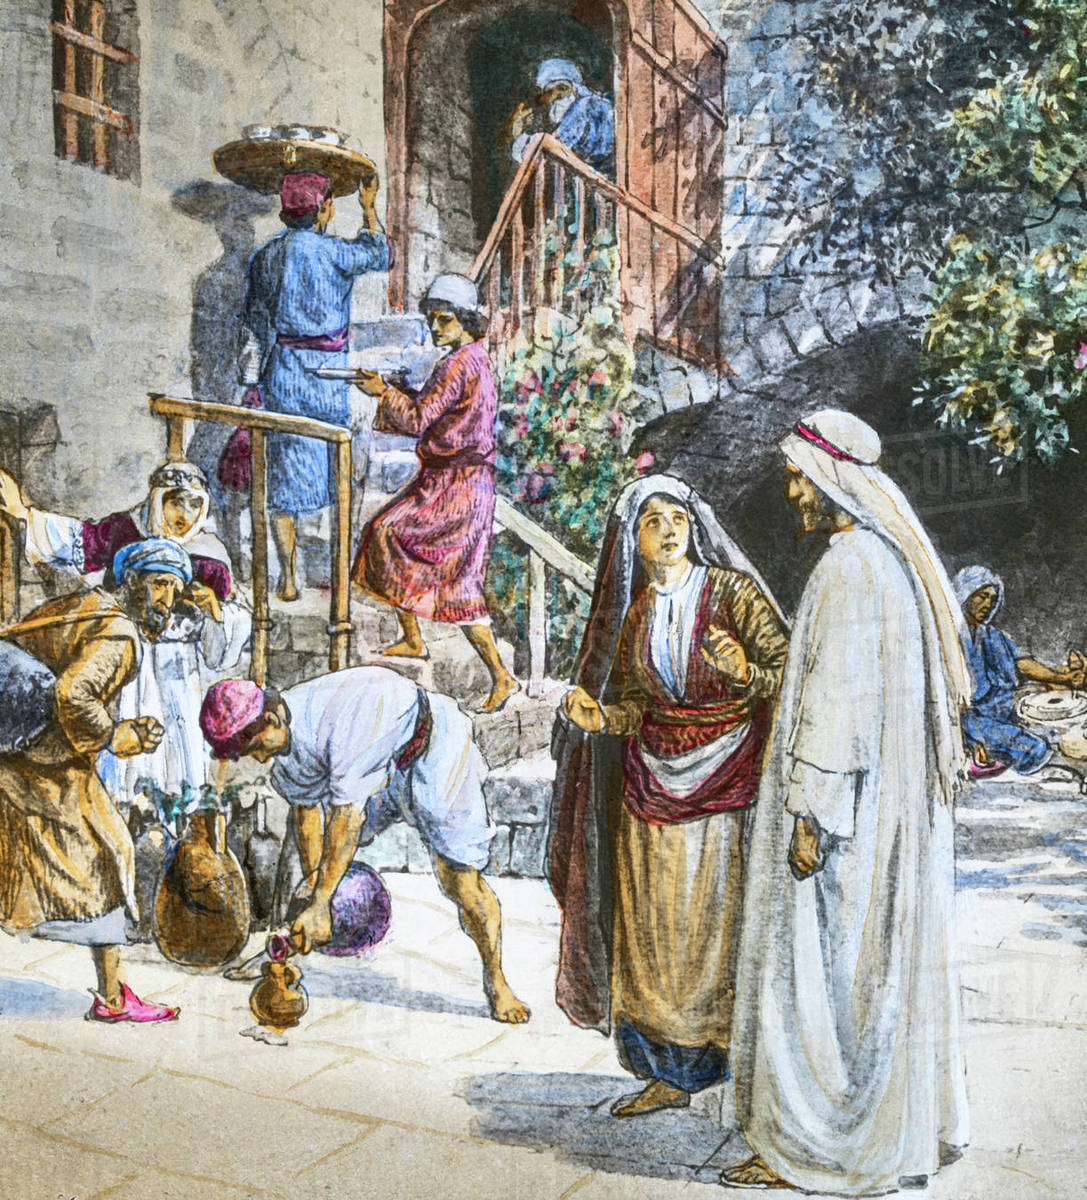 Wedding Feast At Cana.A Hand Coloured Magic Lantern Slide Circa 1900 Series The Life Of Jesus Of Nazareth The Wedding Feast At Cana And On The Third Day A Marriage Took